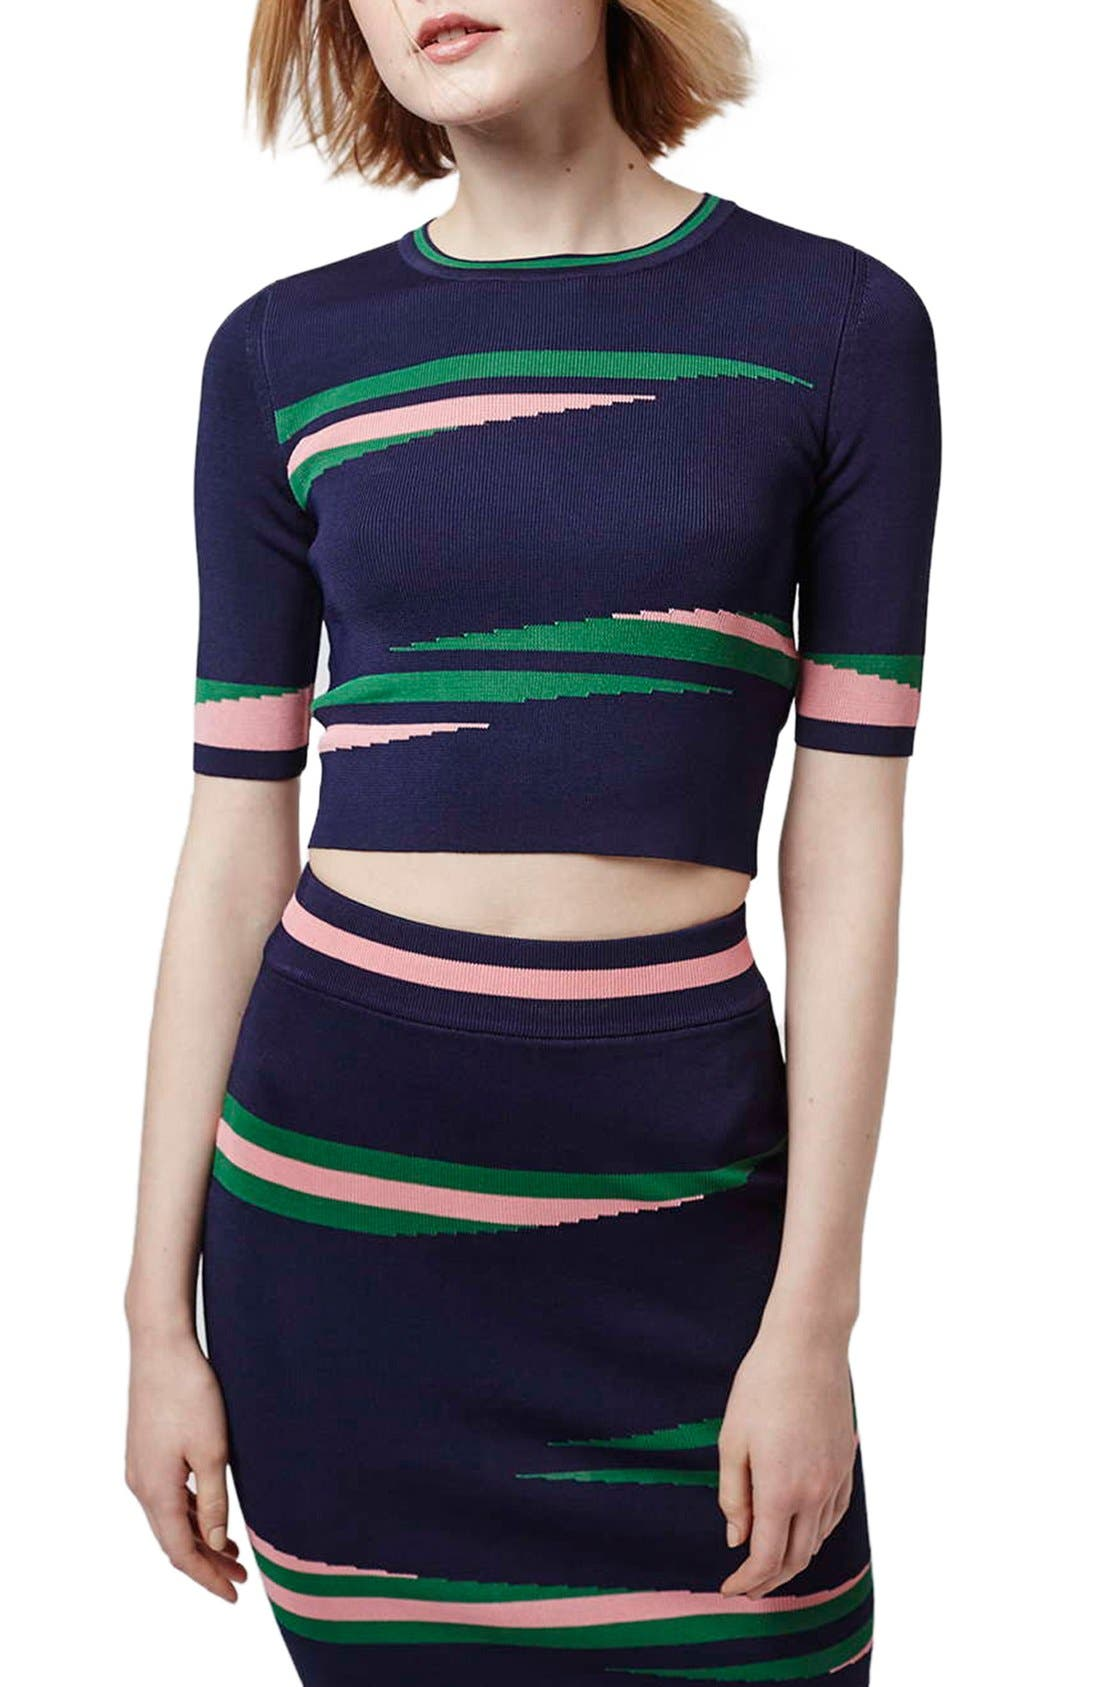 'Eraser Stripe' Crop Top,                             Main thumbnail 1, color,                             410